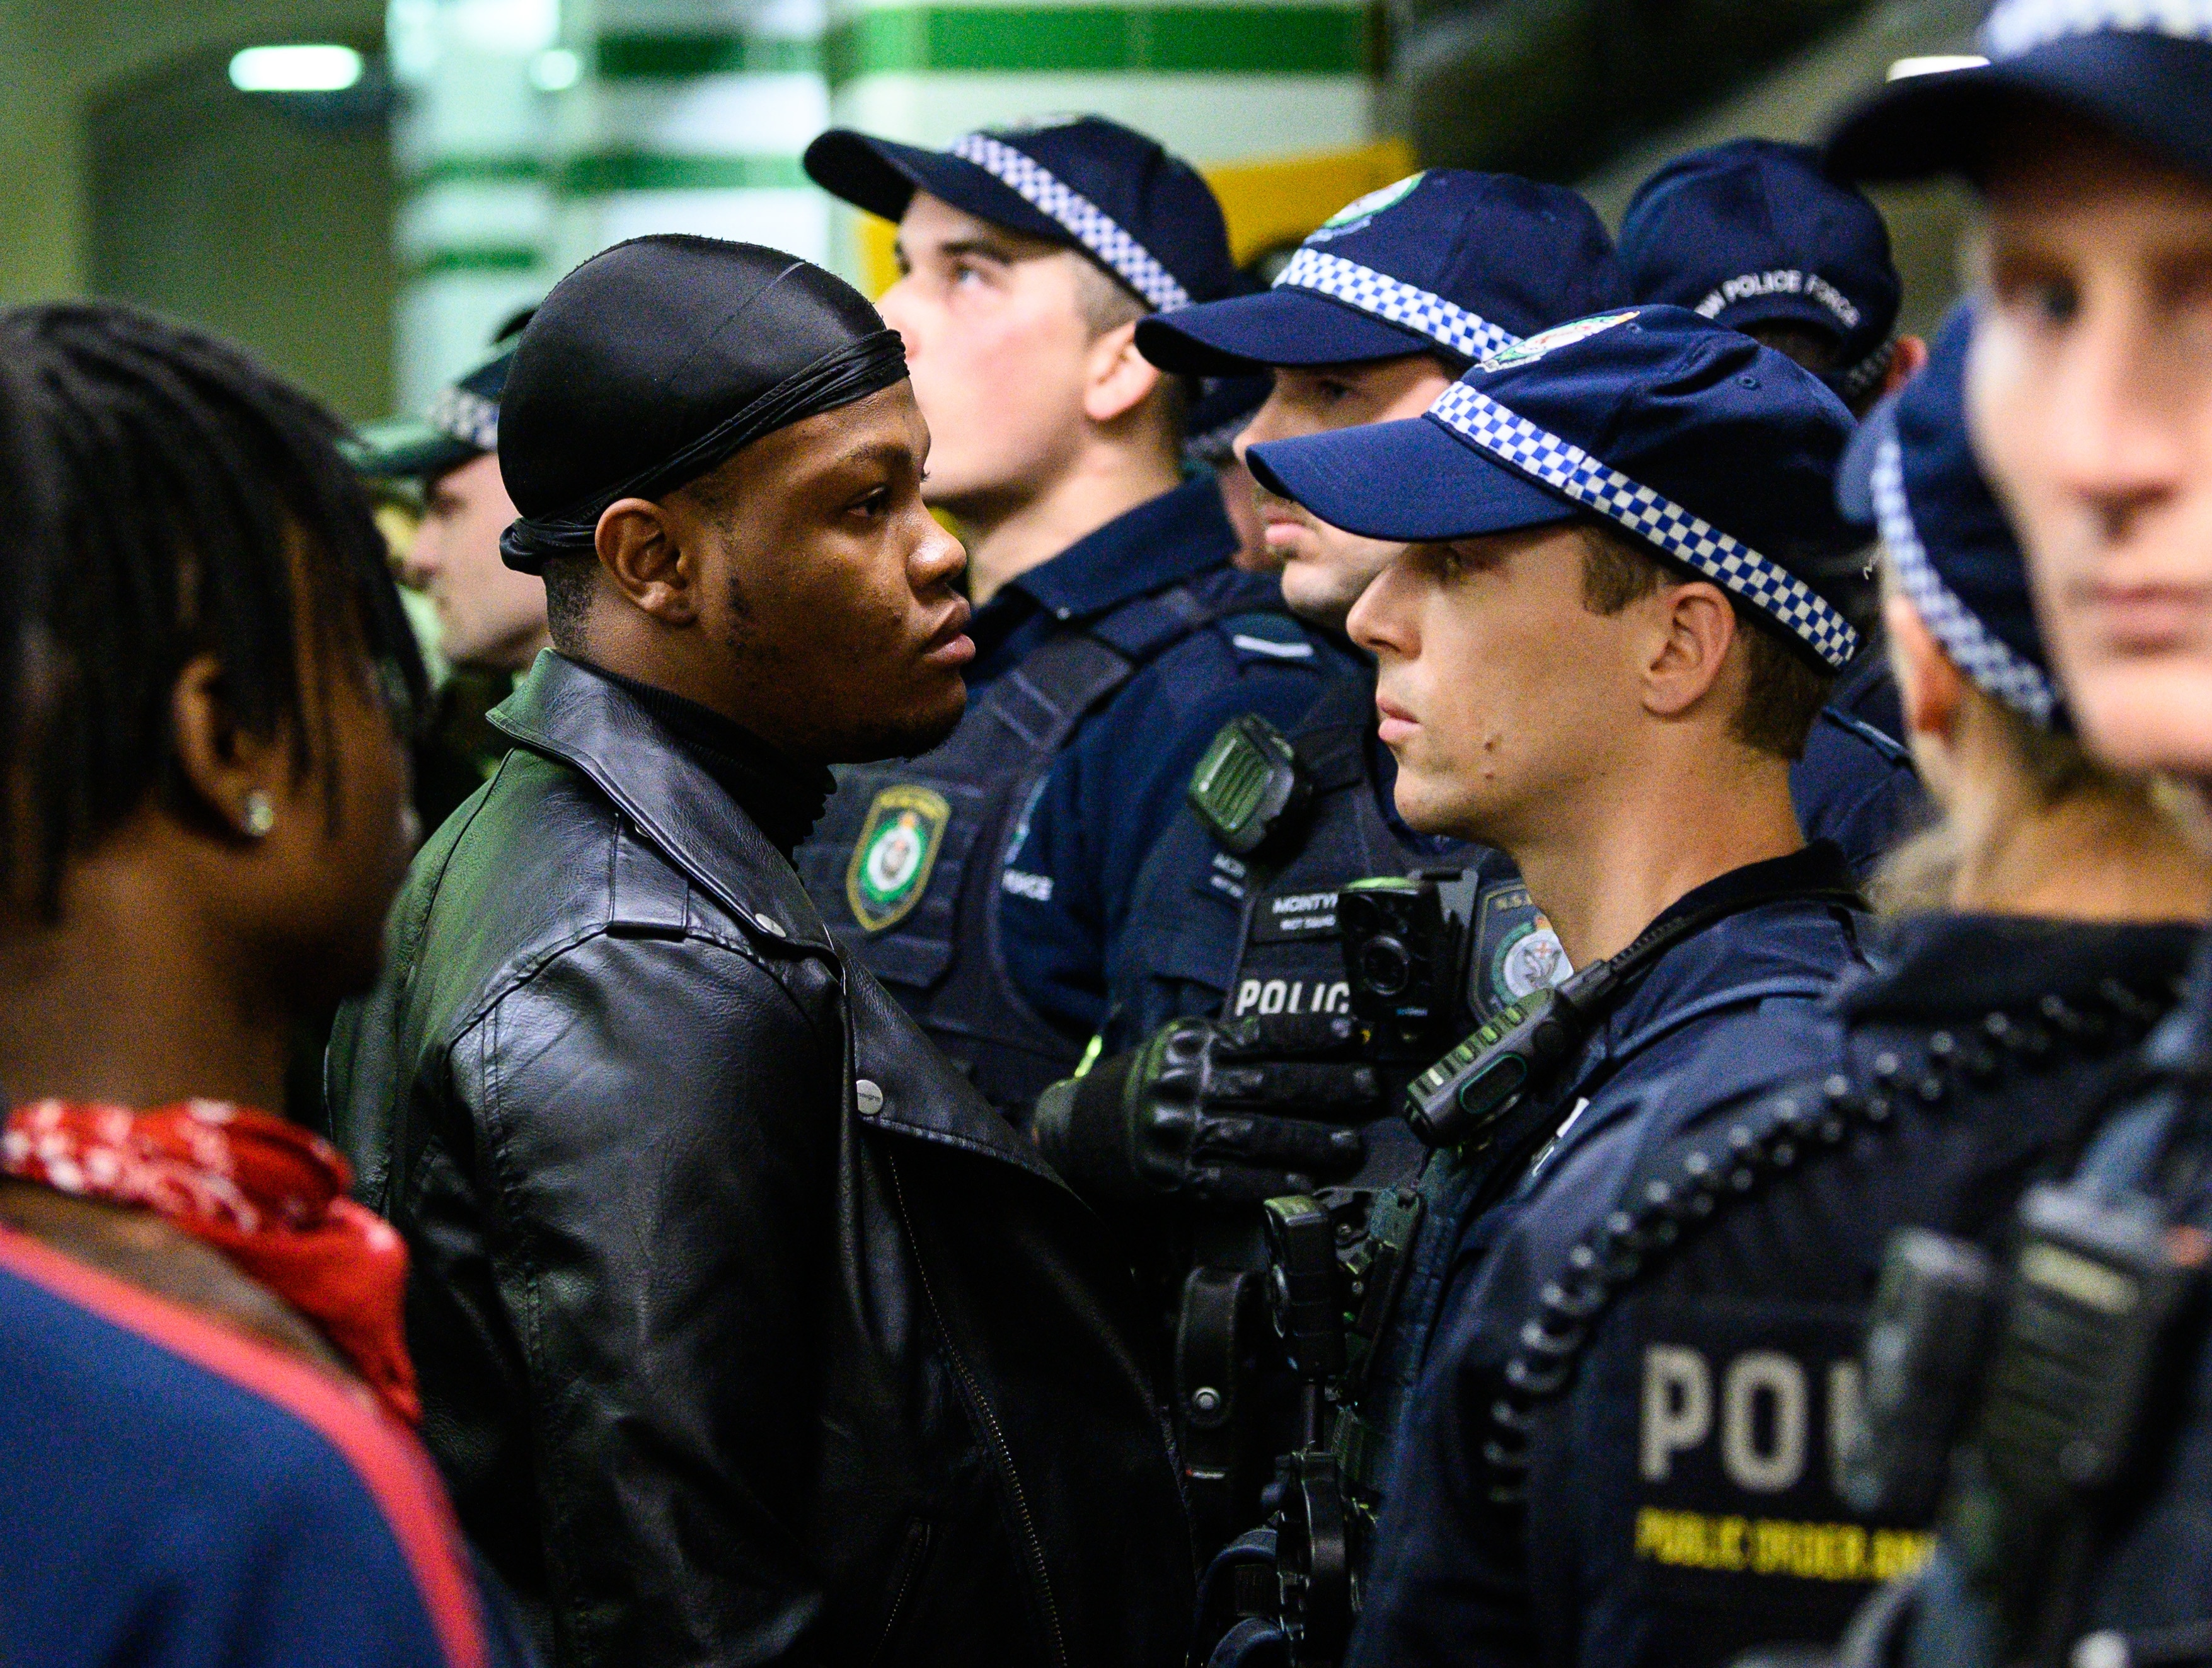 A protestor faces a police officer inside Central Station after a Black Lives Matter rally in Sydney.